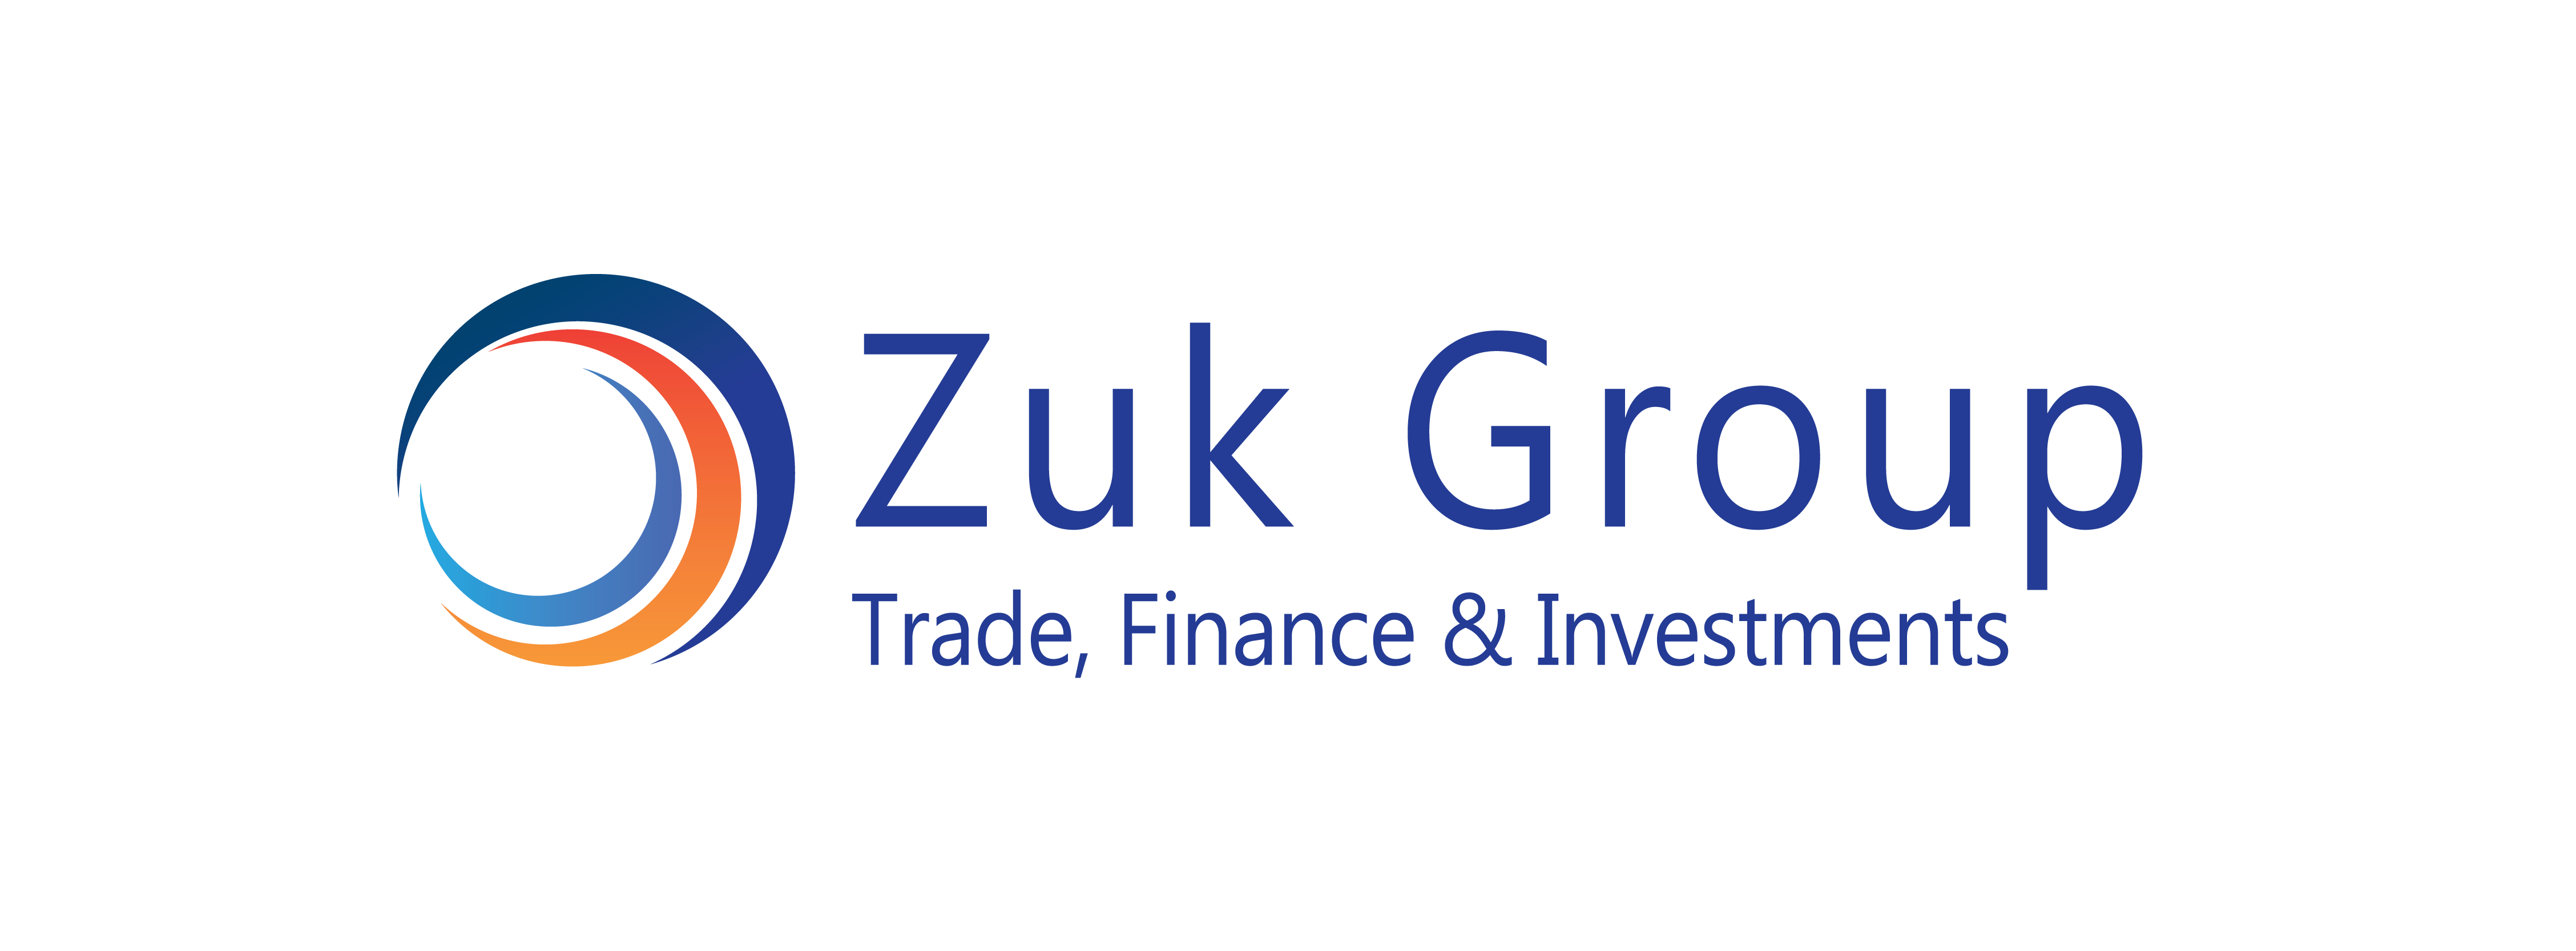 Zuk Group